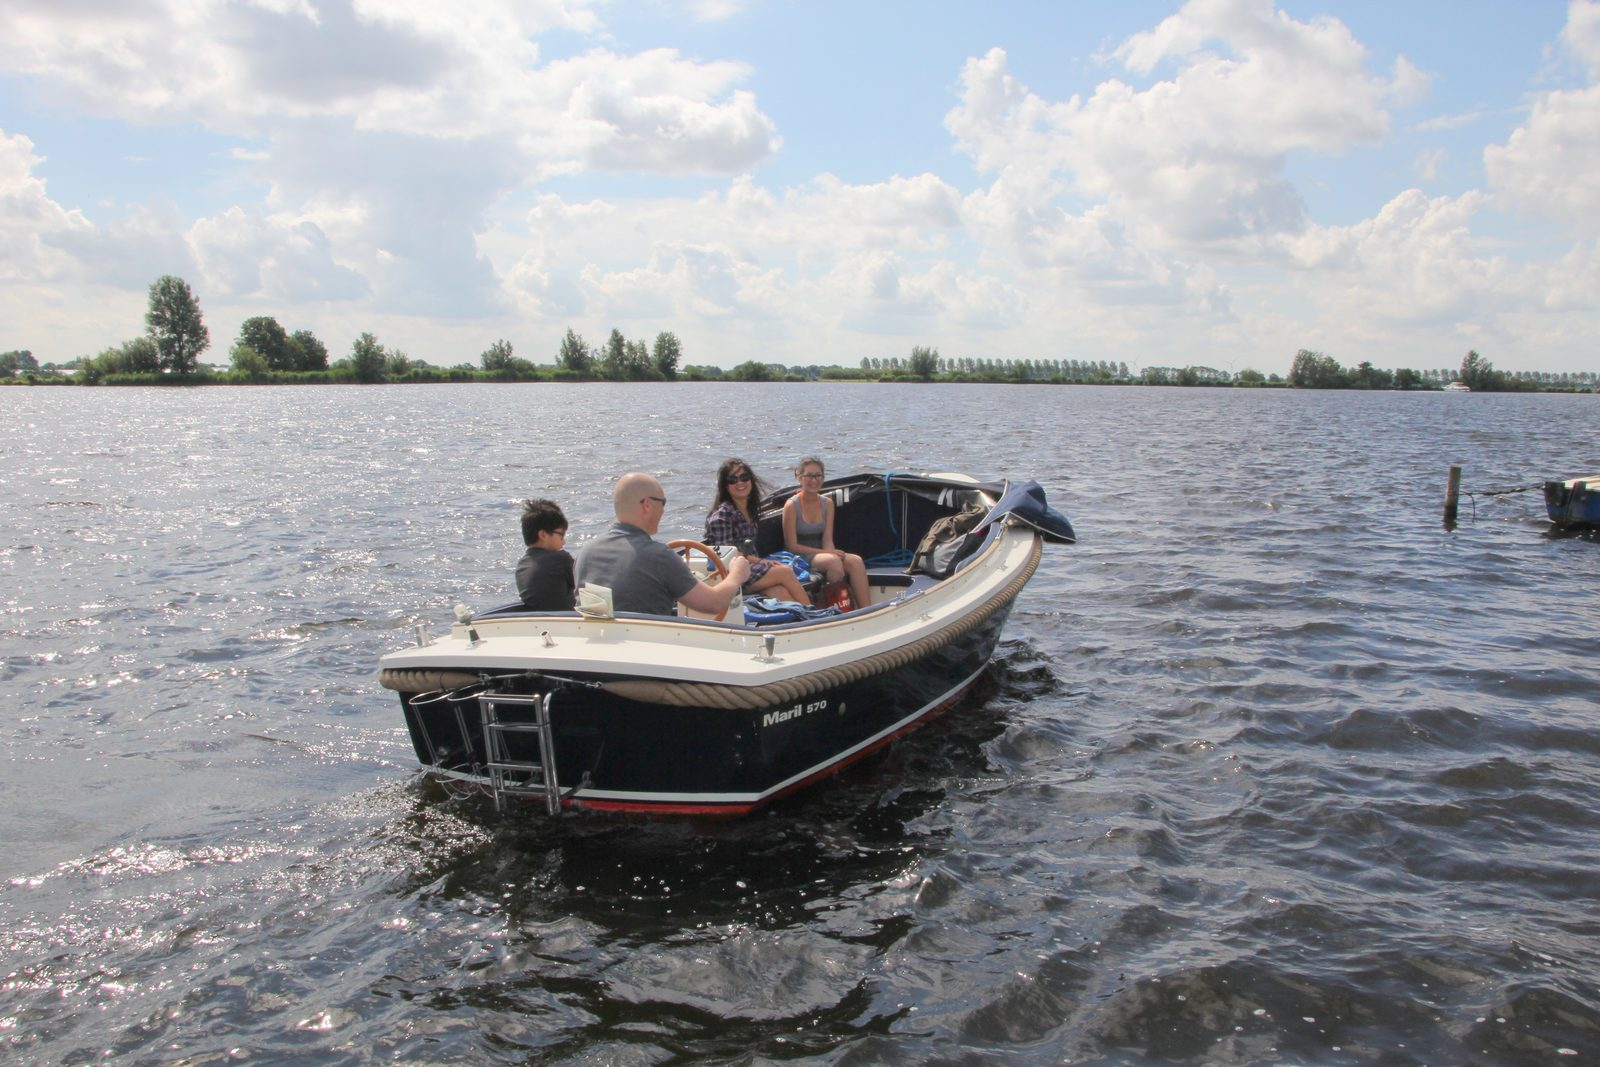 Boat rental to park guests (unfortunately under repair)